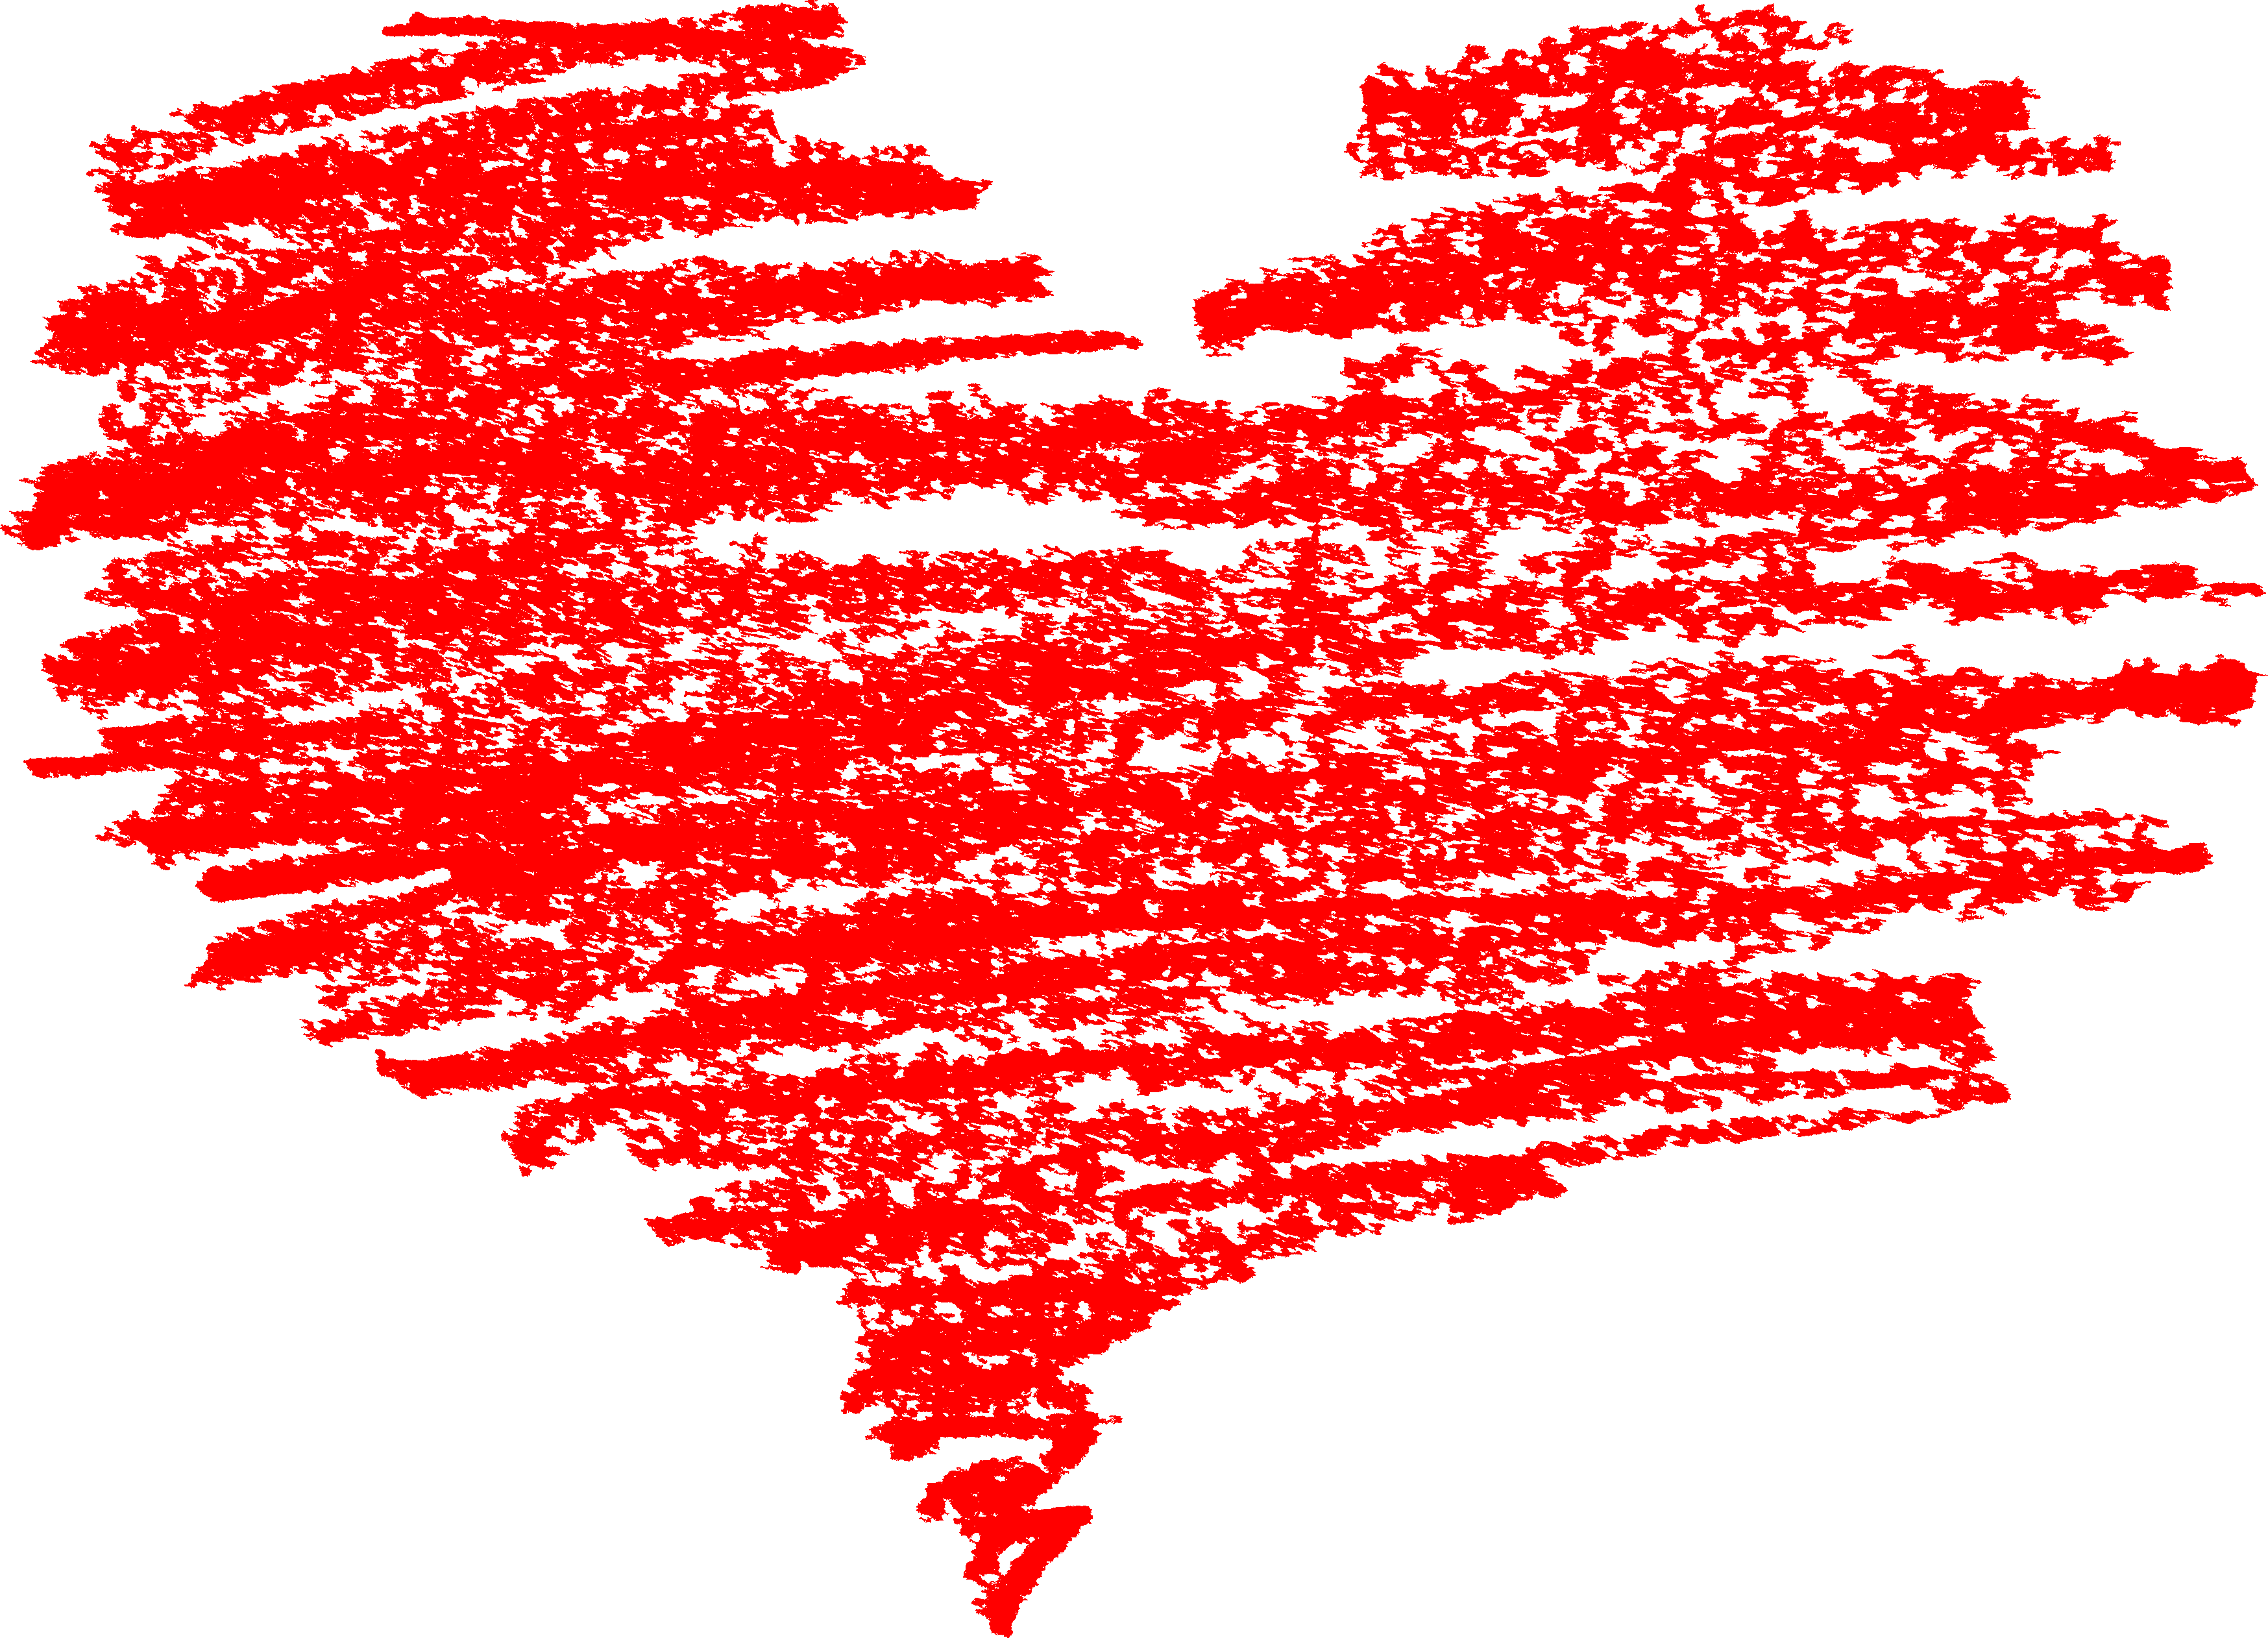 Brush stroke heart clipart image black and white library 5 Scribble Heart (PNG Transparent) | OnlyGFX.com image black and white library